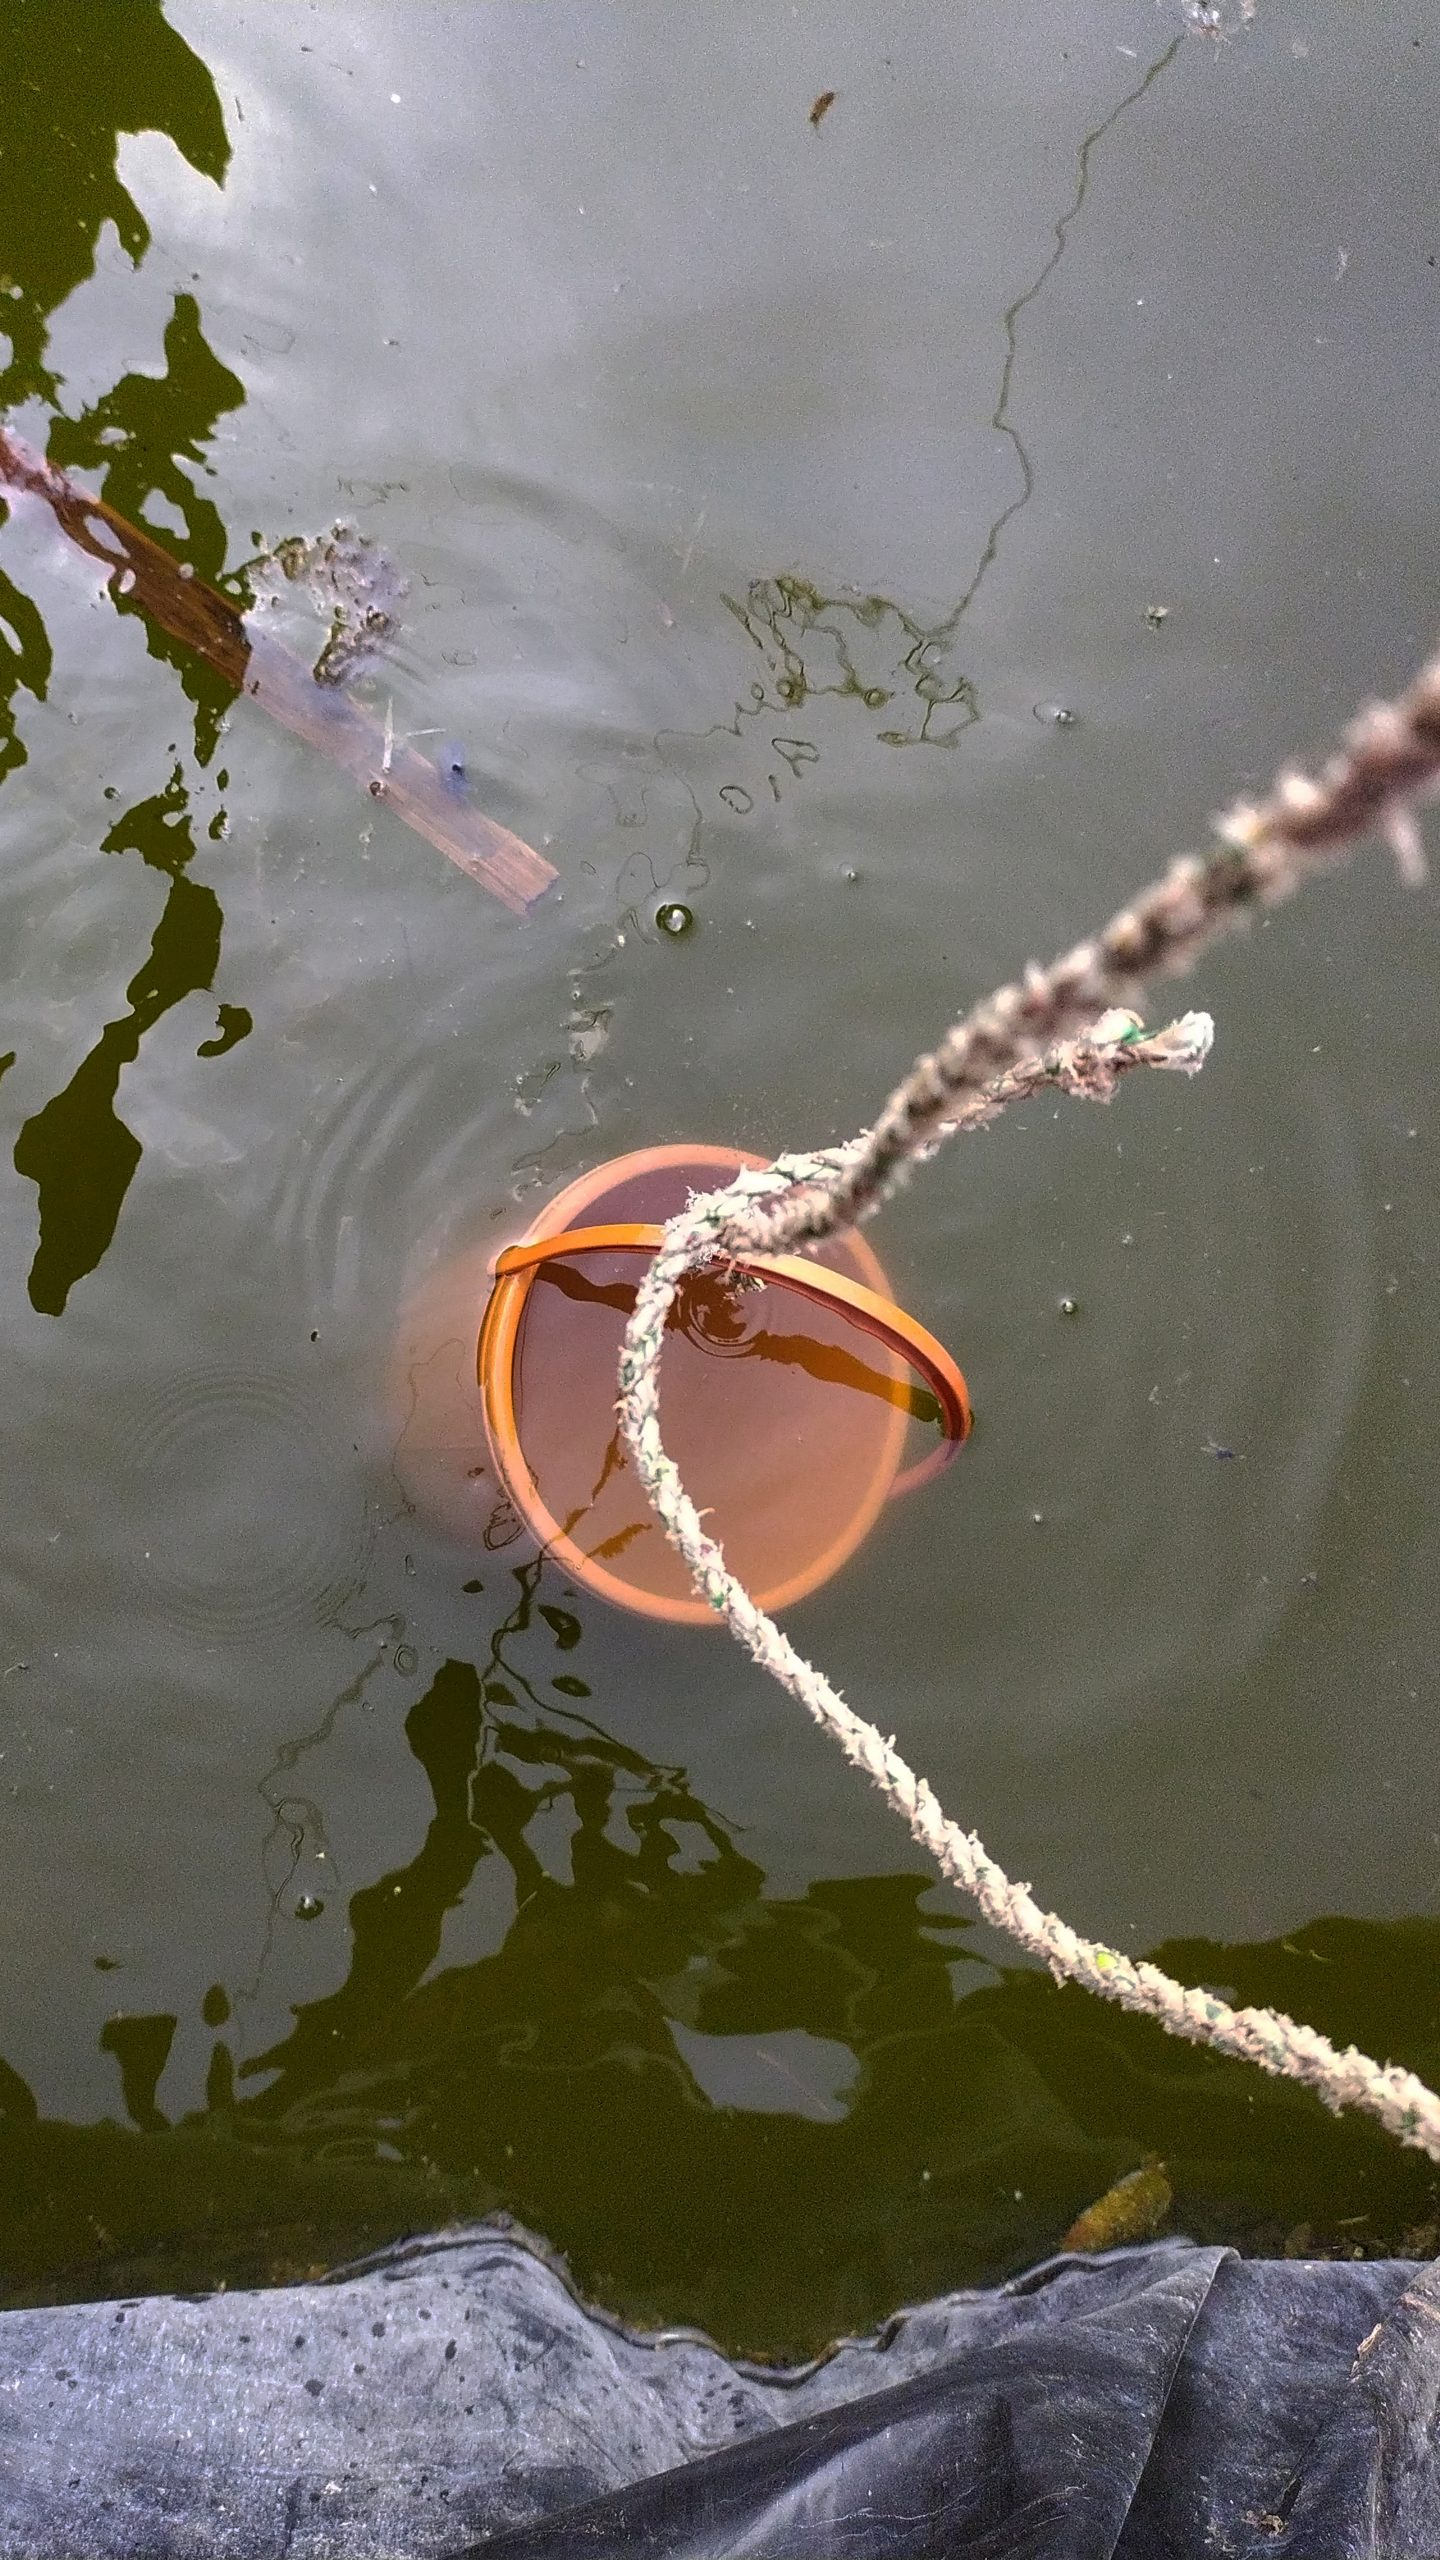 Pulling water from river with bucket